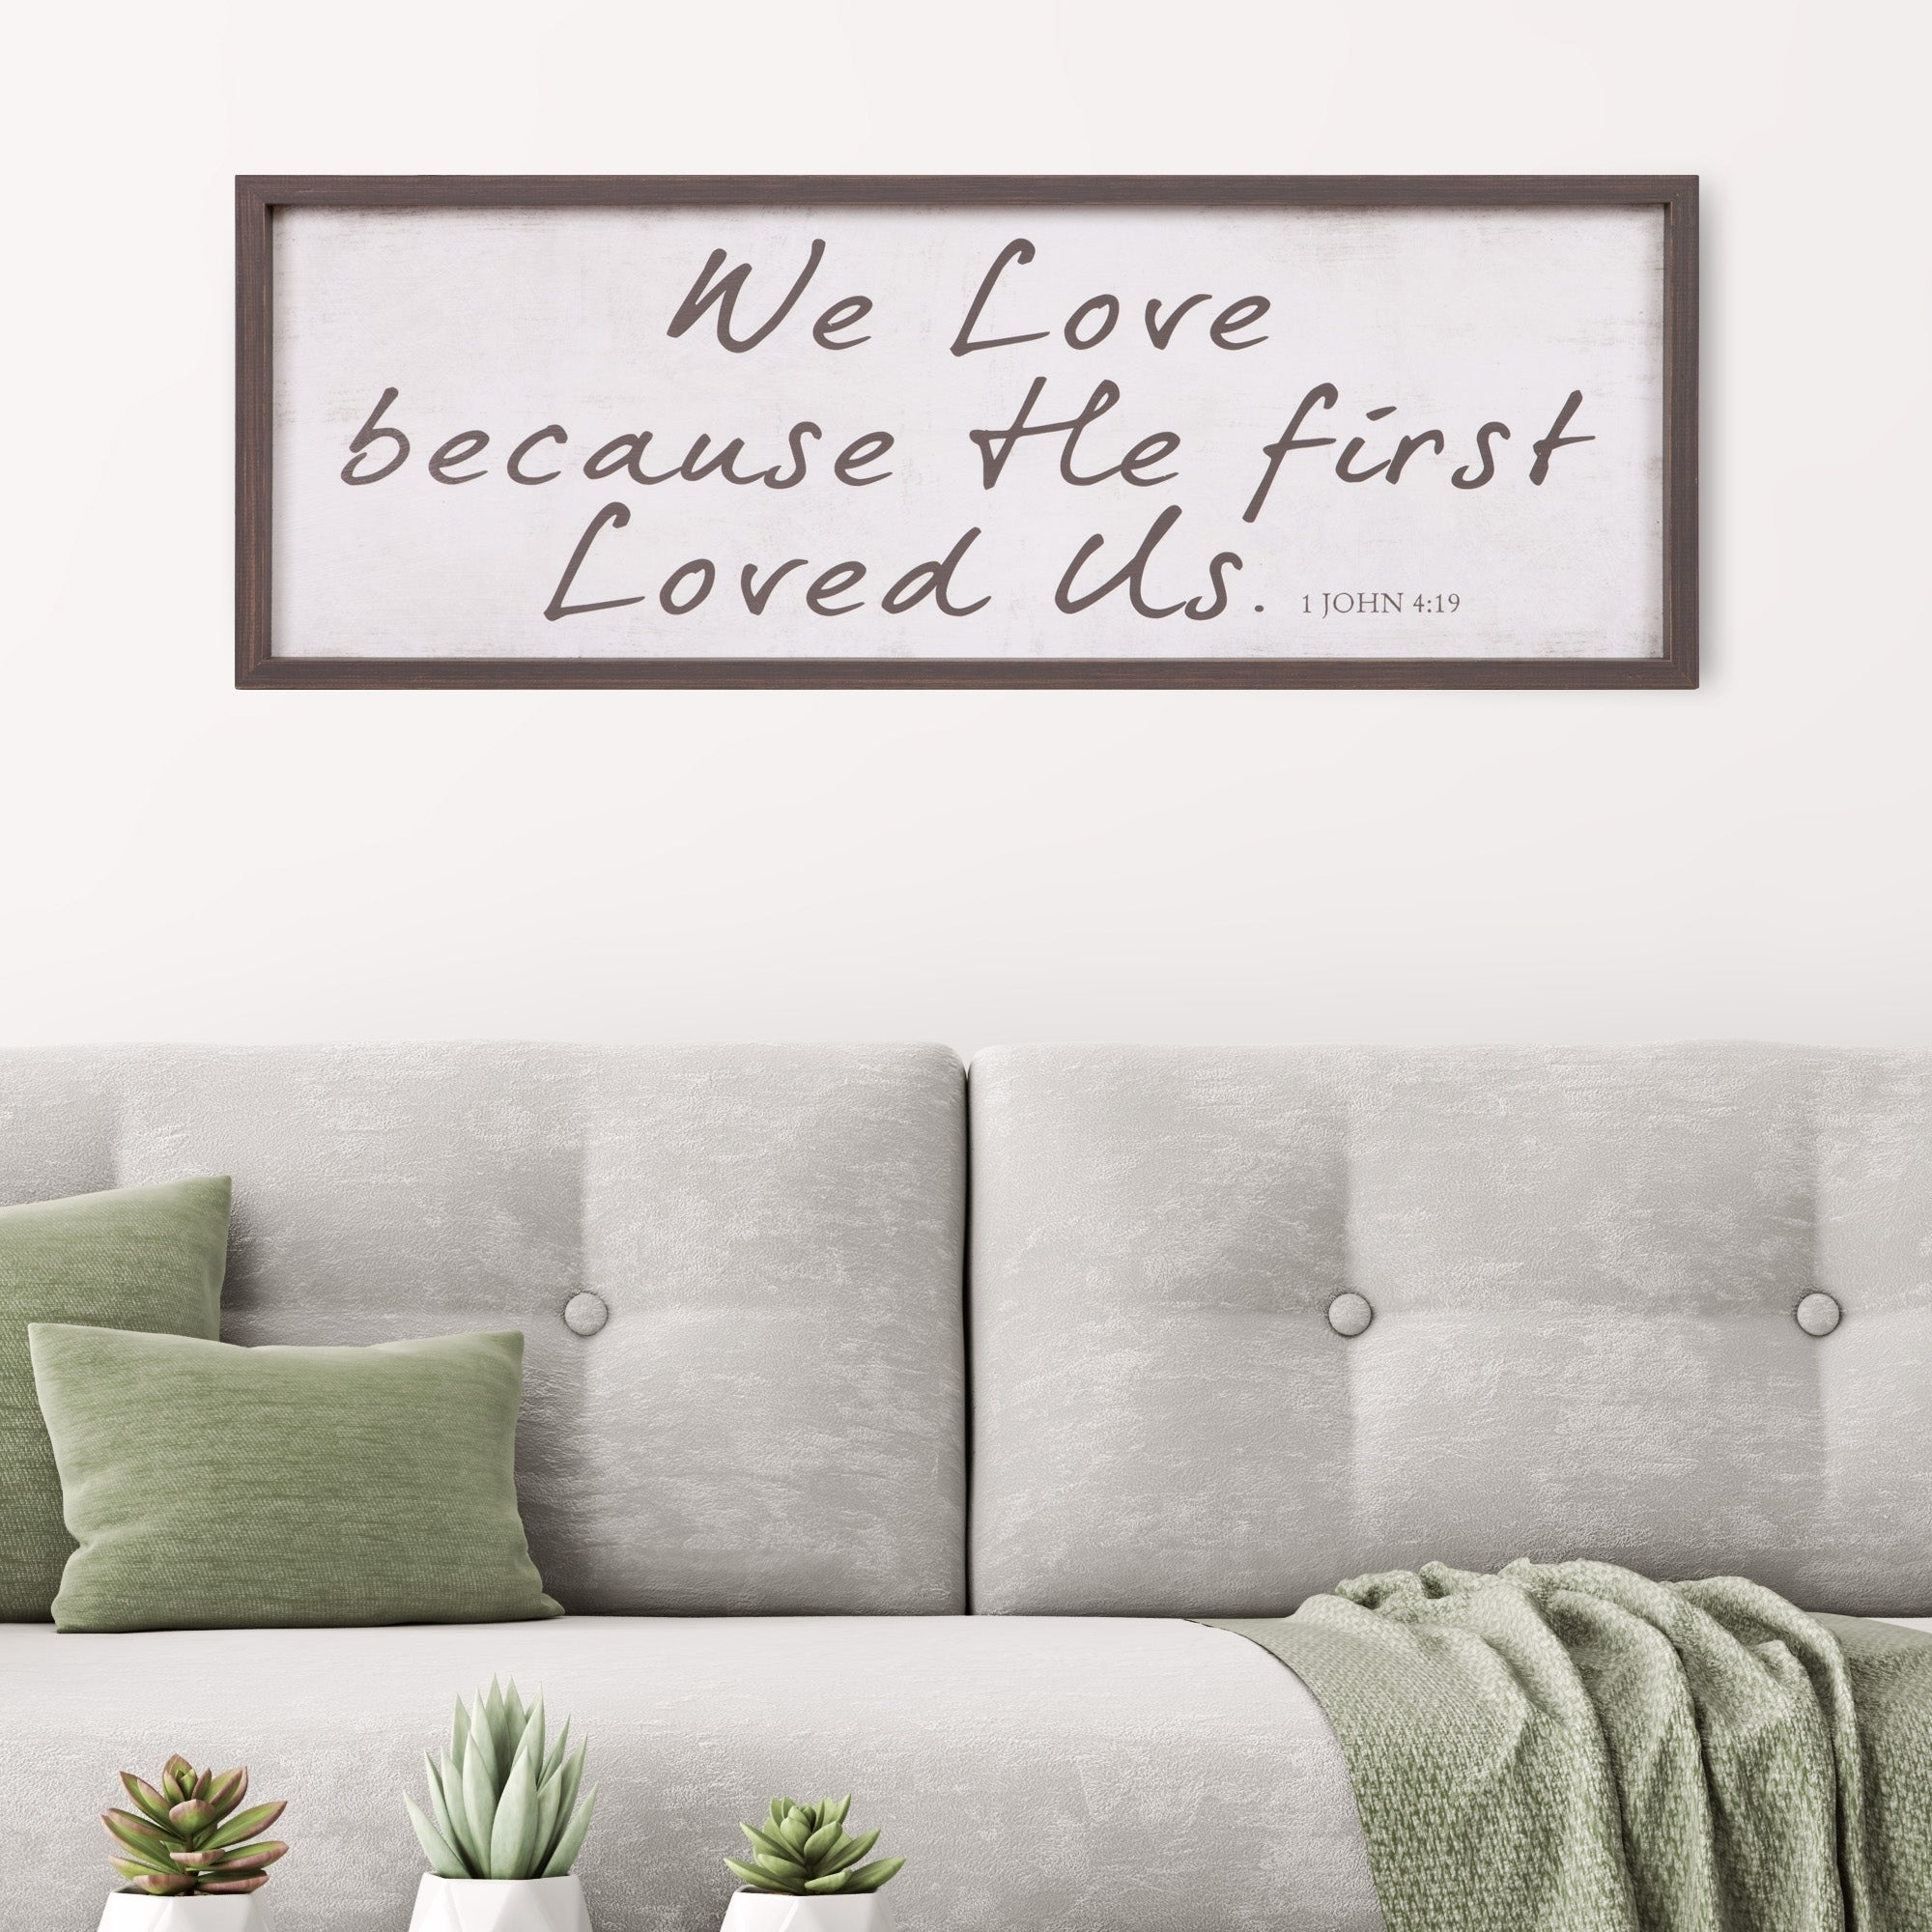 Patton Wall Decor We Love Because He First Loved Us Bible Verse Rustic Wood Framed Wall Art Décor, 12x36 – White With This Is Us Wall Decor (View 23 of 30)